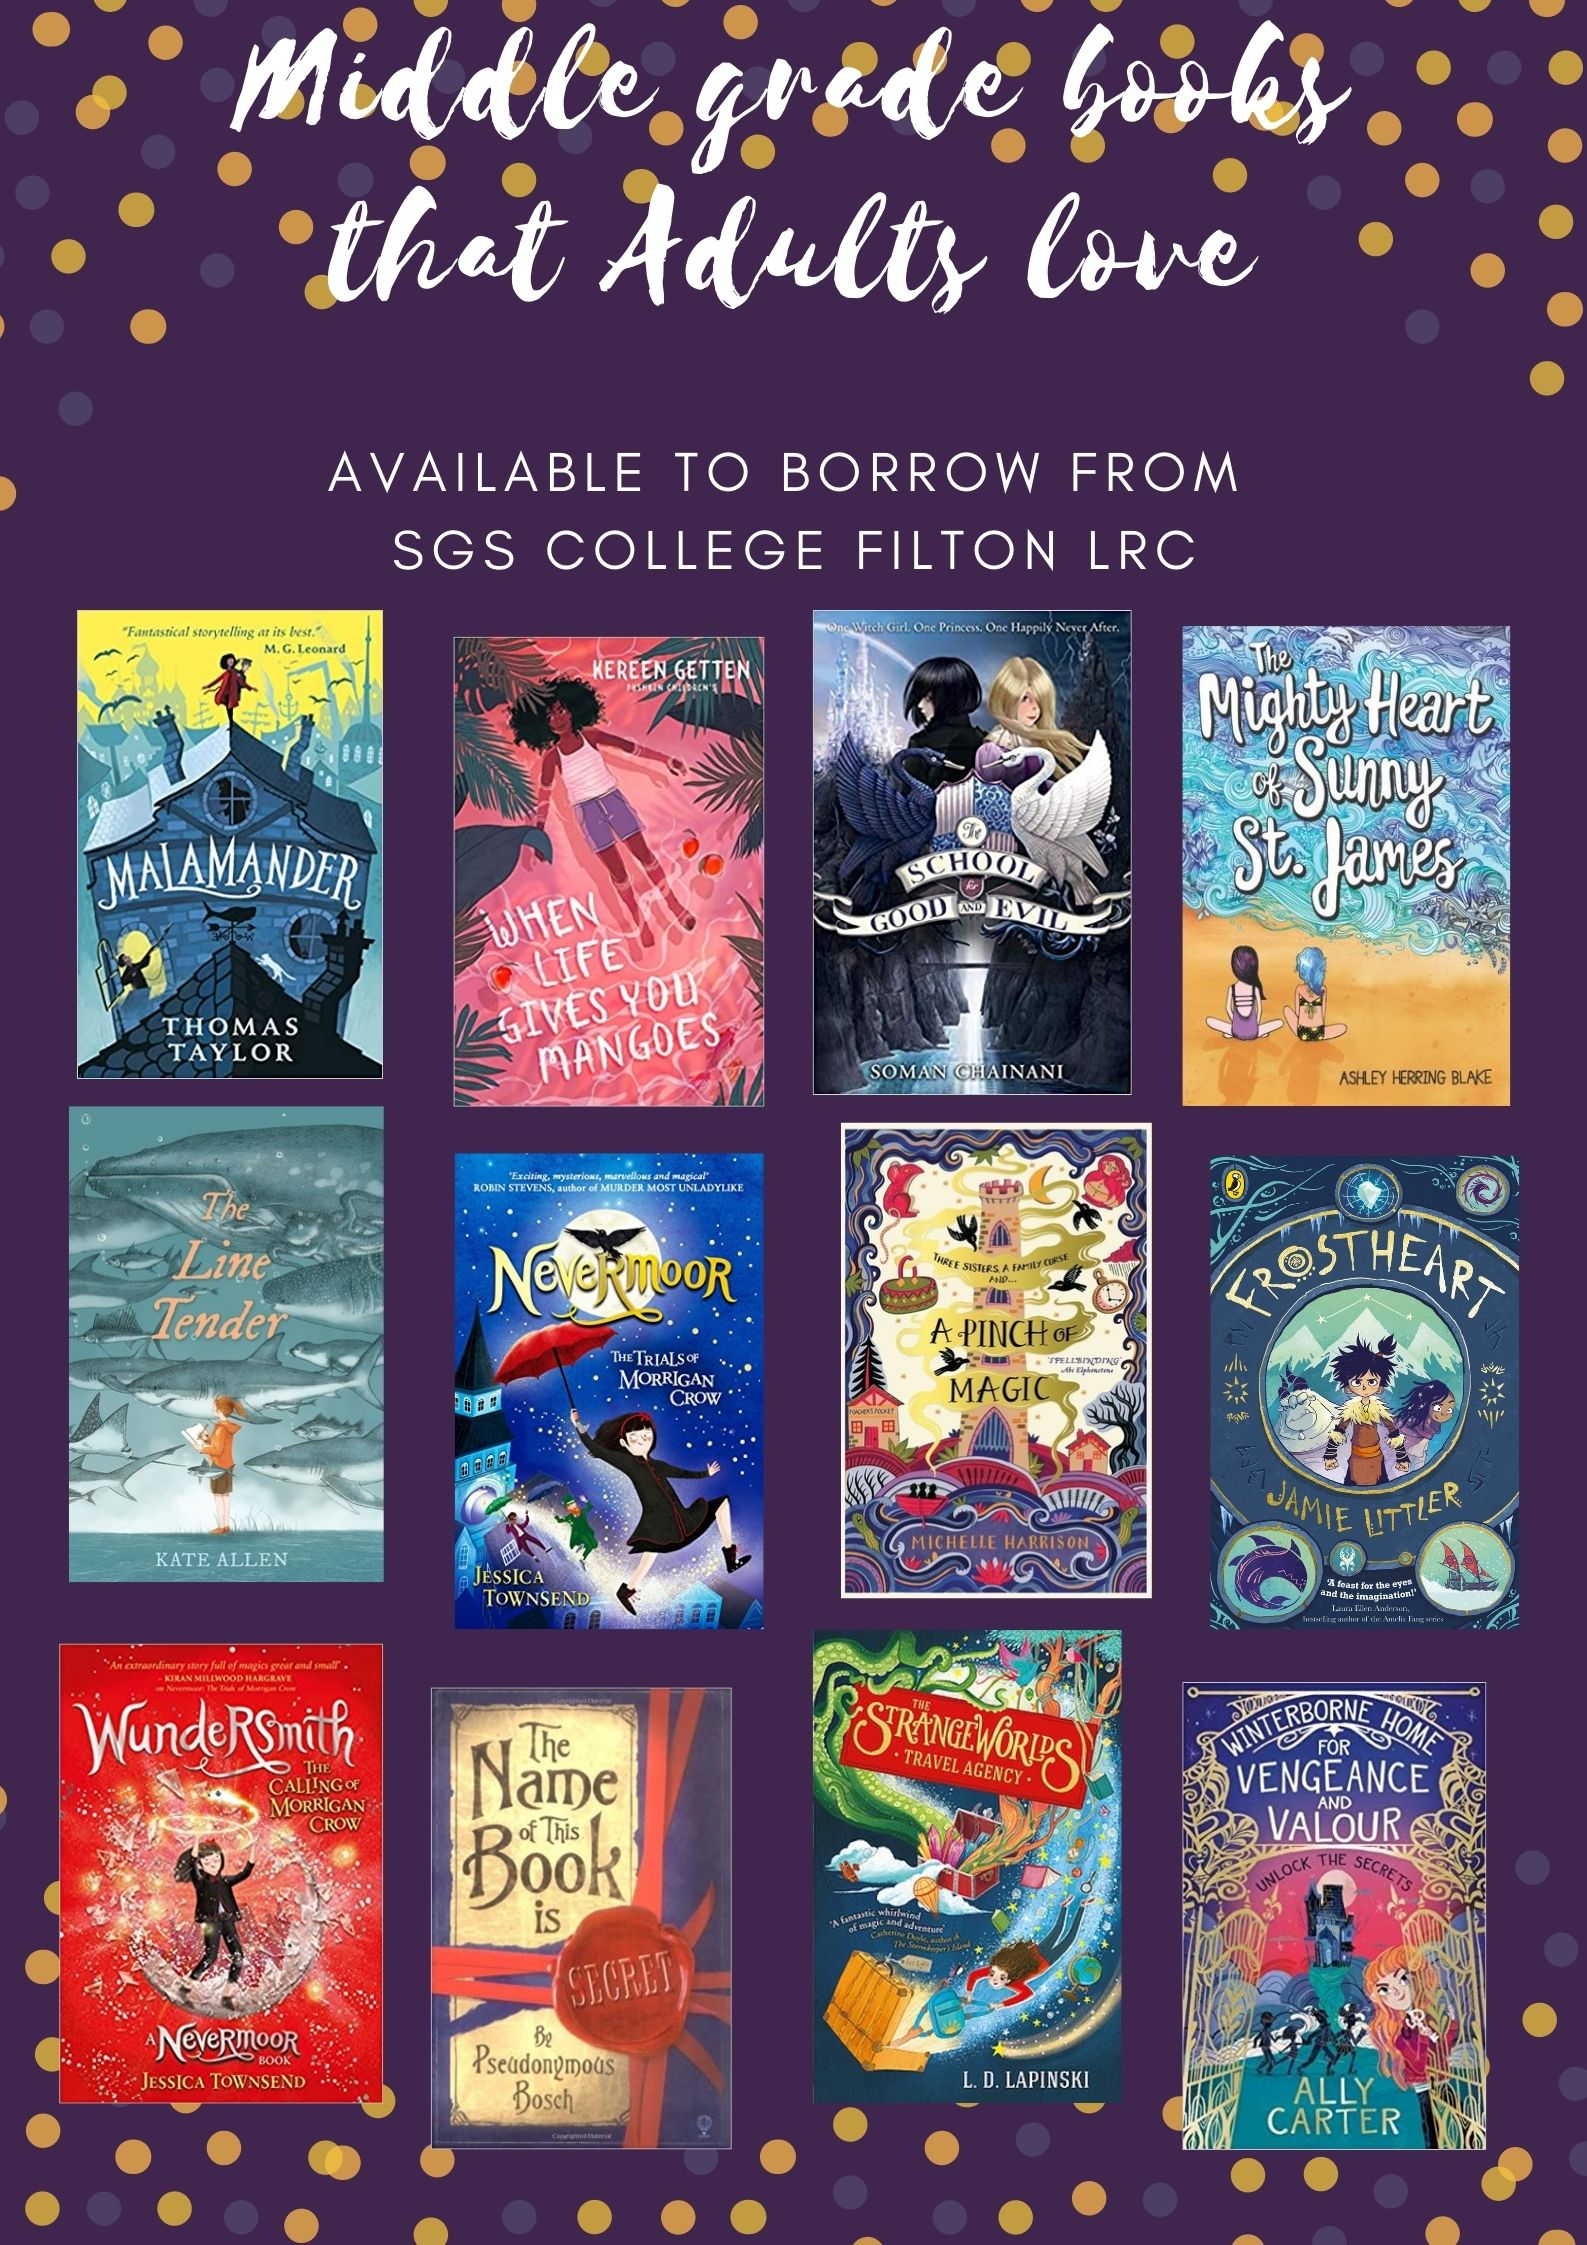 """Rectangular portrait poster with a deep, warm purple background, with orange and darker purple-ish grey circles decorating the top and bottom at random intervals. In white handwriting font, the main title reads """"Middle grade books that Adults love"""". Beneath in a sans serif font reads """"AVAILABLE TO BORROW FROM SGS COLLEGE LRC FILTON"""". Below are twelve images of book covers. The books displayed are listed in the blog post below."""